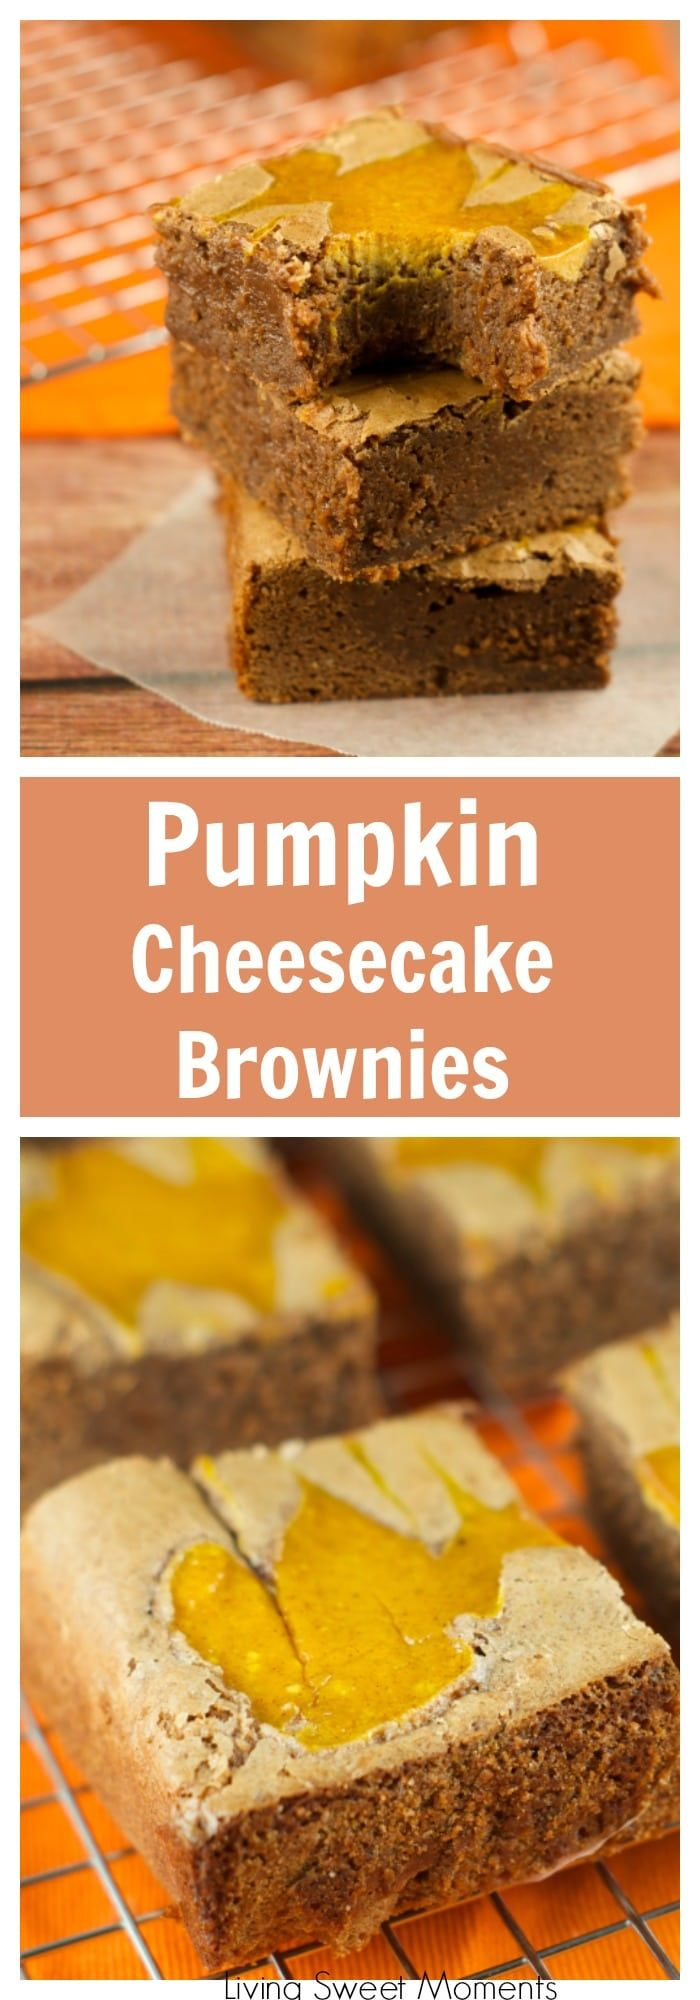 Pumpkin Cheesecake Brownies: this easy and delicious recipe is perfect for fall and winter. Brownies and fudgy with a creamy spiced pumpkin cheesecake top